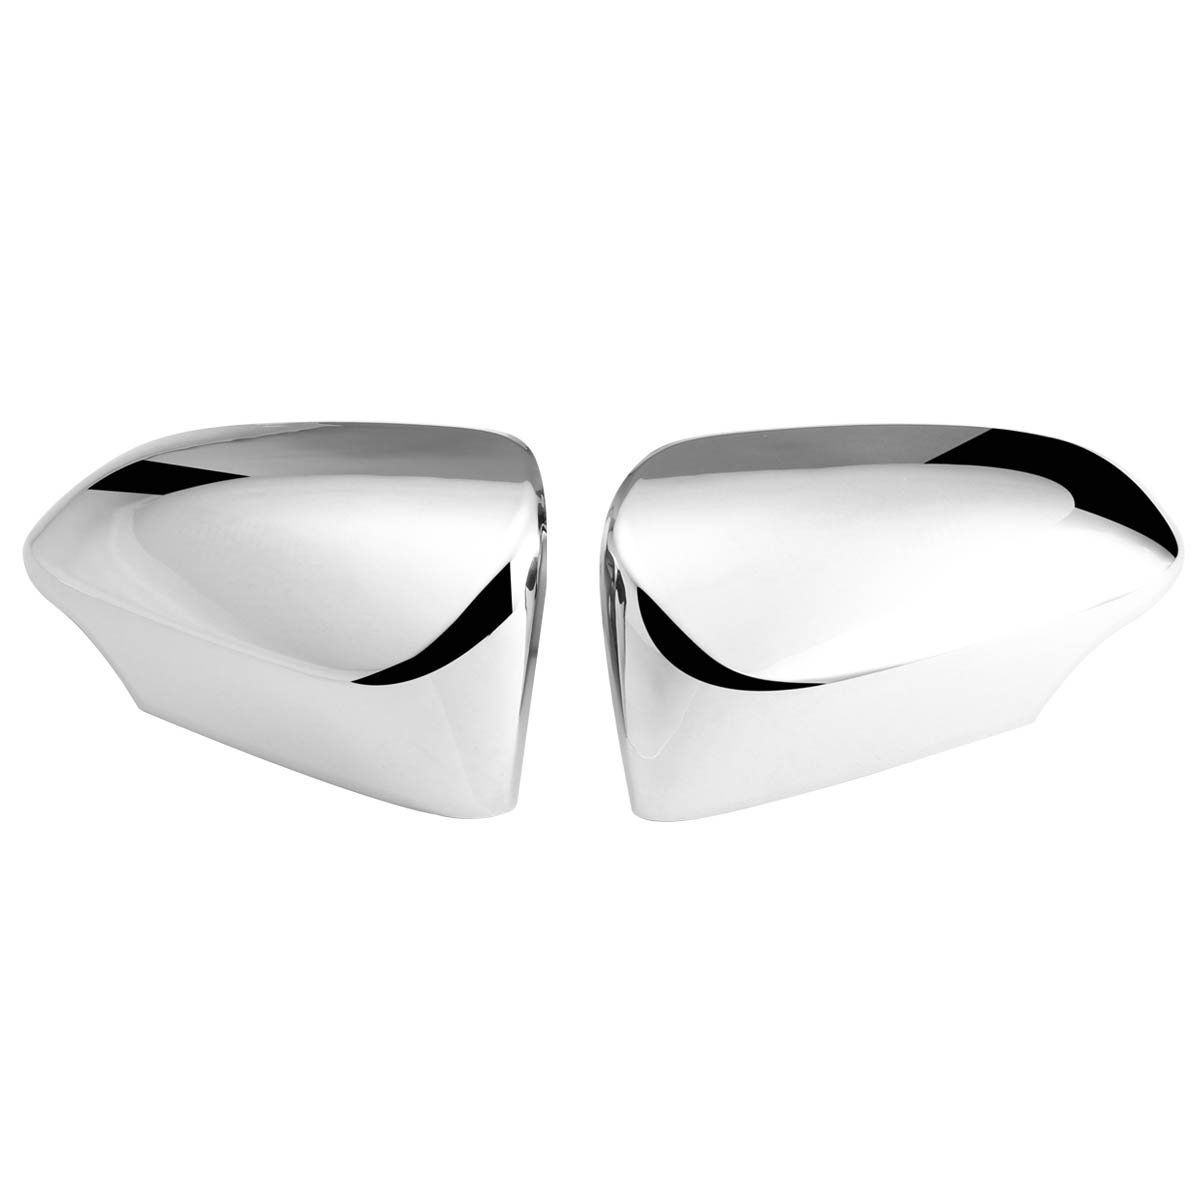 SIDE MIRROR COVERS FOR MARUTI EECO (SET OF 2PCS)